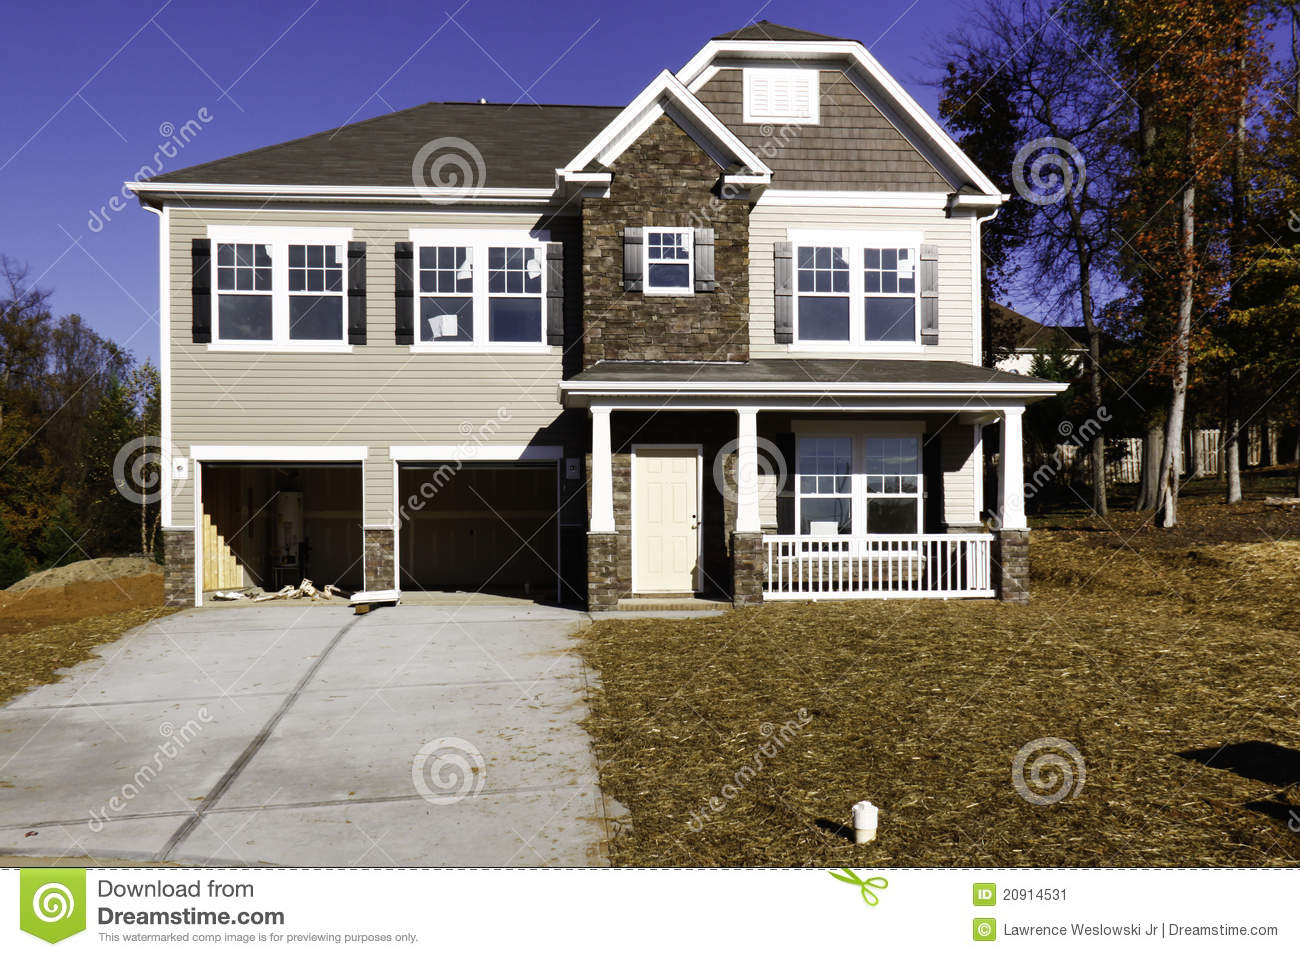 New construction home with unfinished landscaping stock for Complete home construction